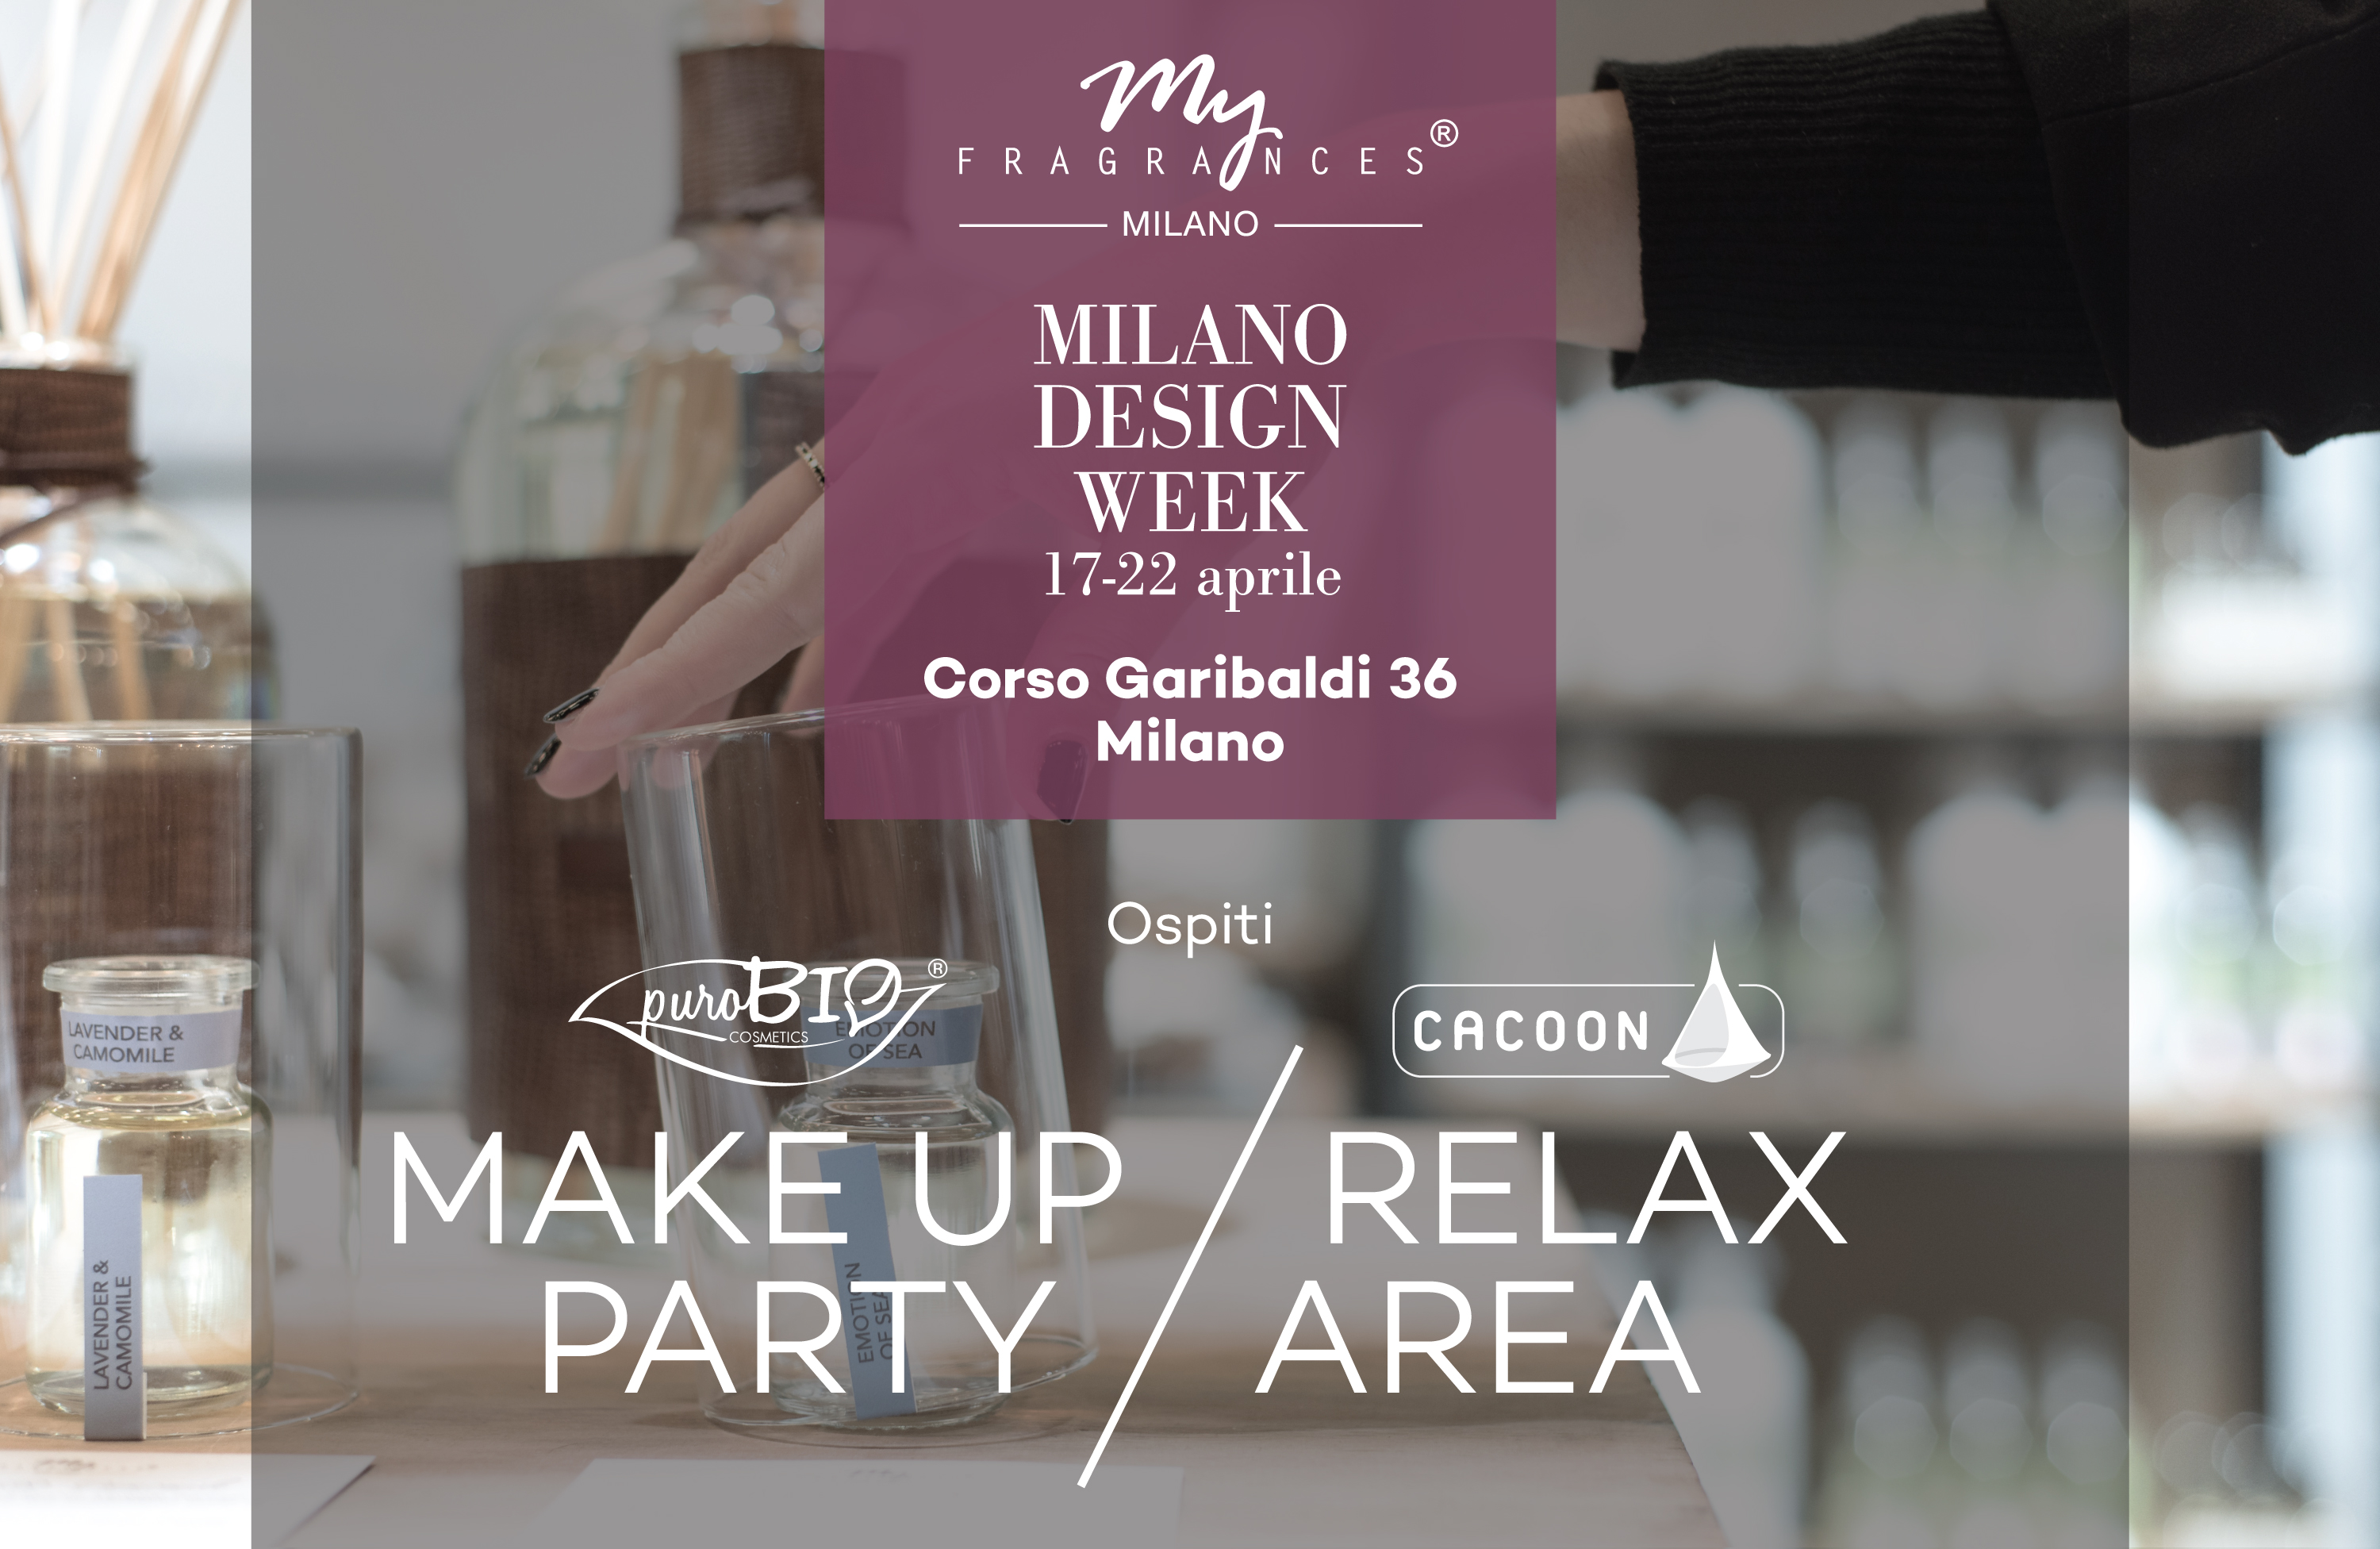 milano design week myfragrances